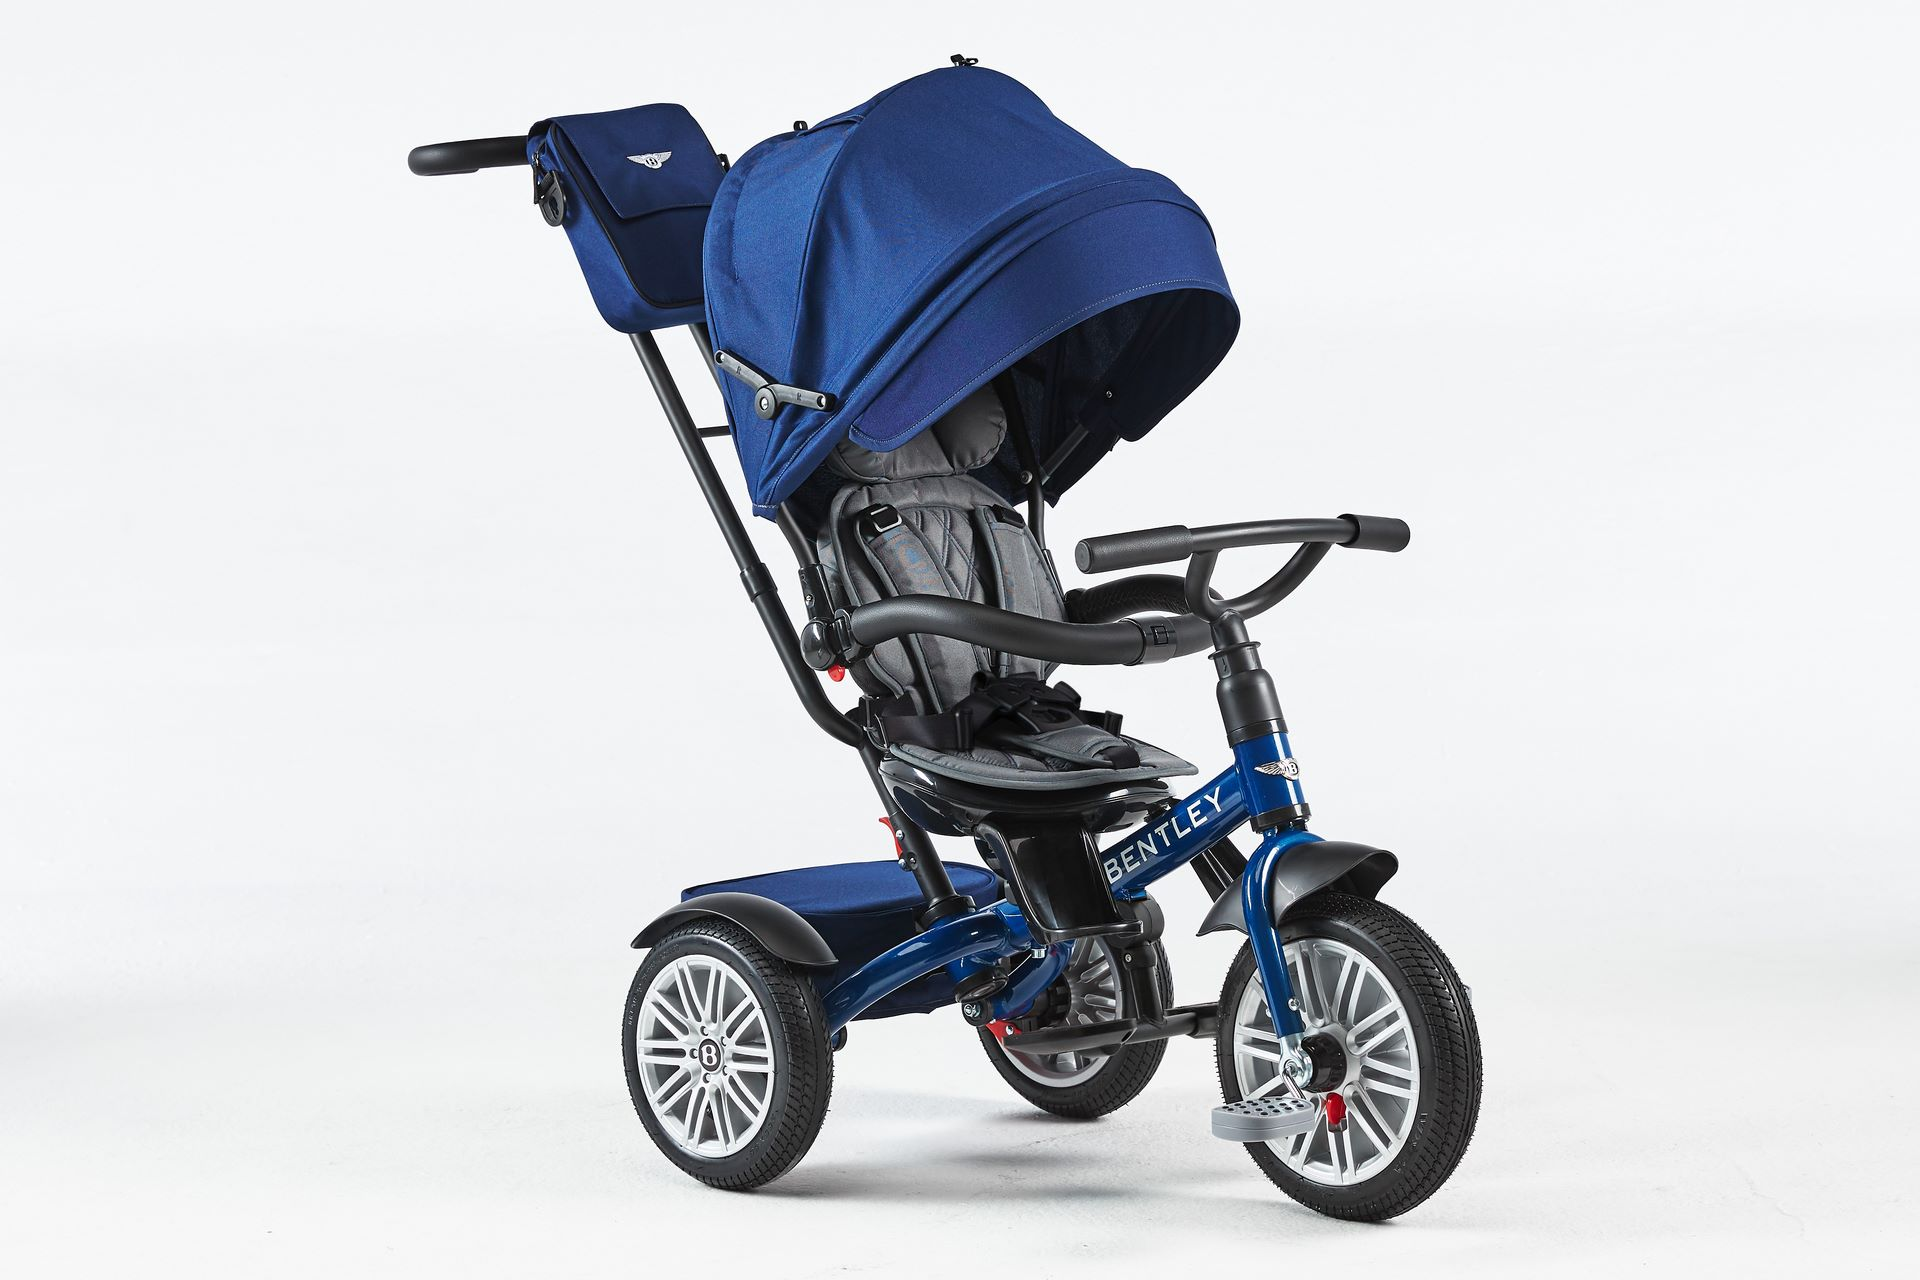 The New Bentley Tricycle 2020